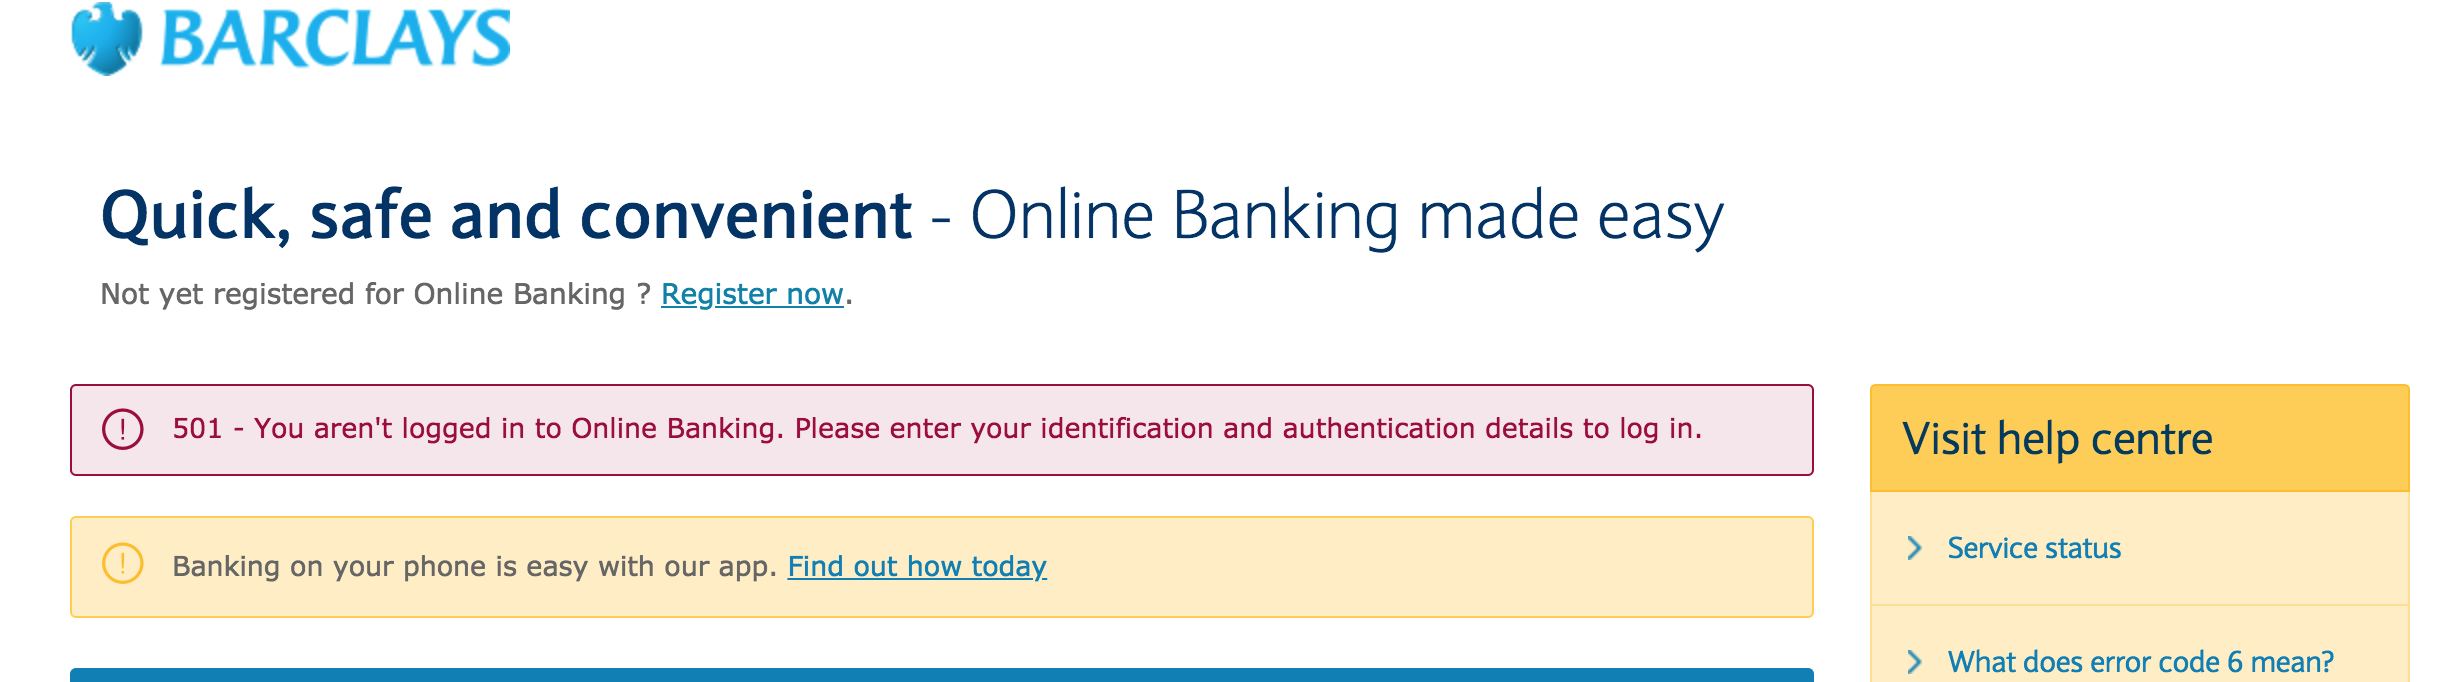 Barclays - 501 error response and logout when trying to give consent